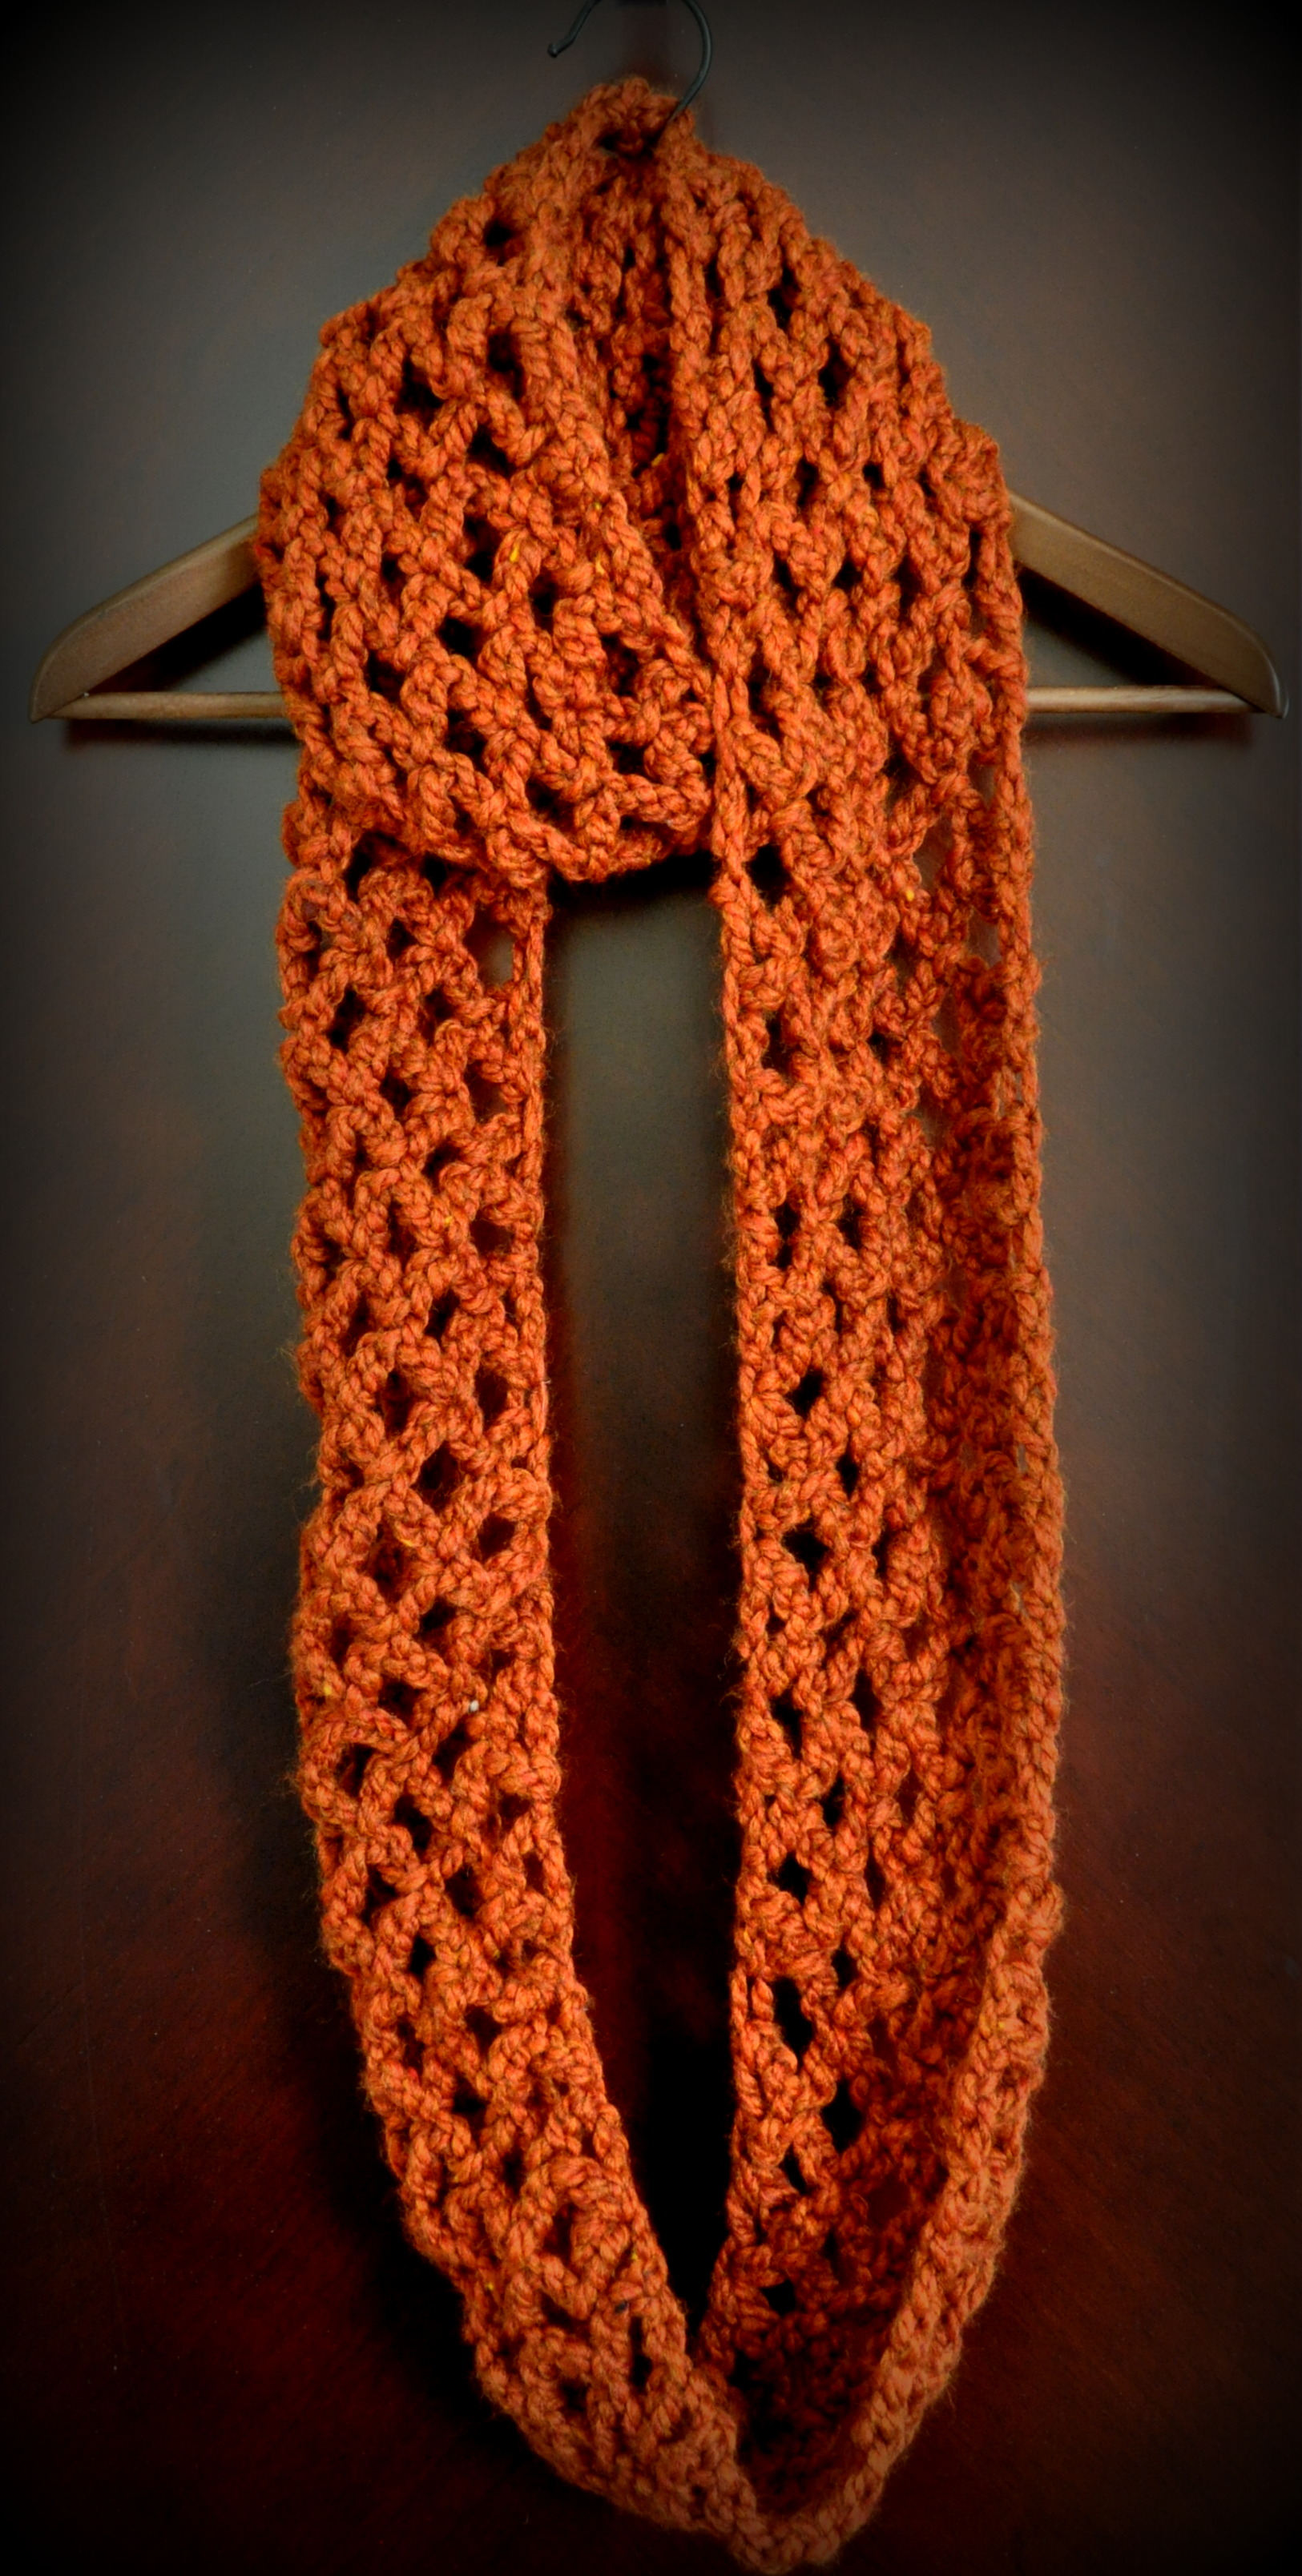 Free Crochet Infinity Chain Scarf Pattern : Free Pattern: Diamond Lattice Chain Crochet Infinity Scarf ...